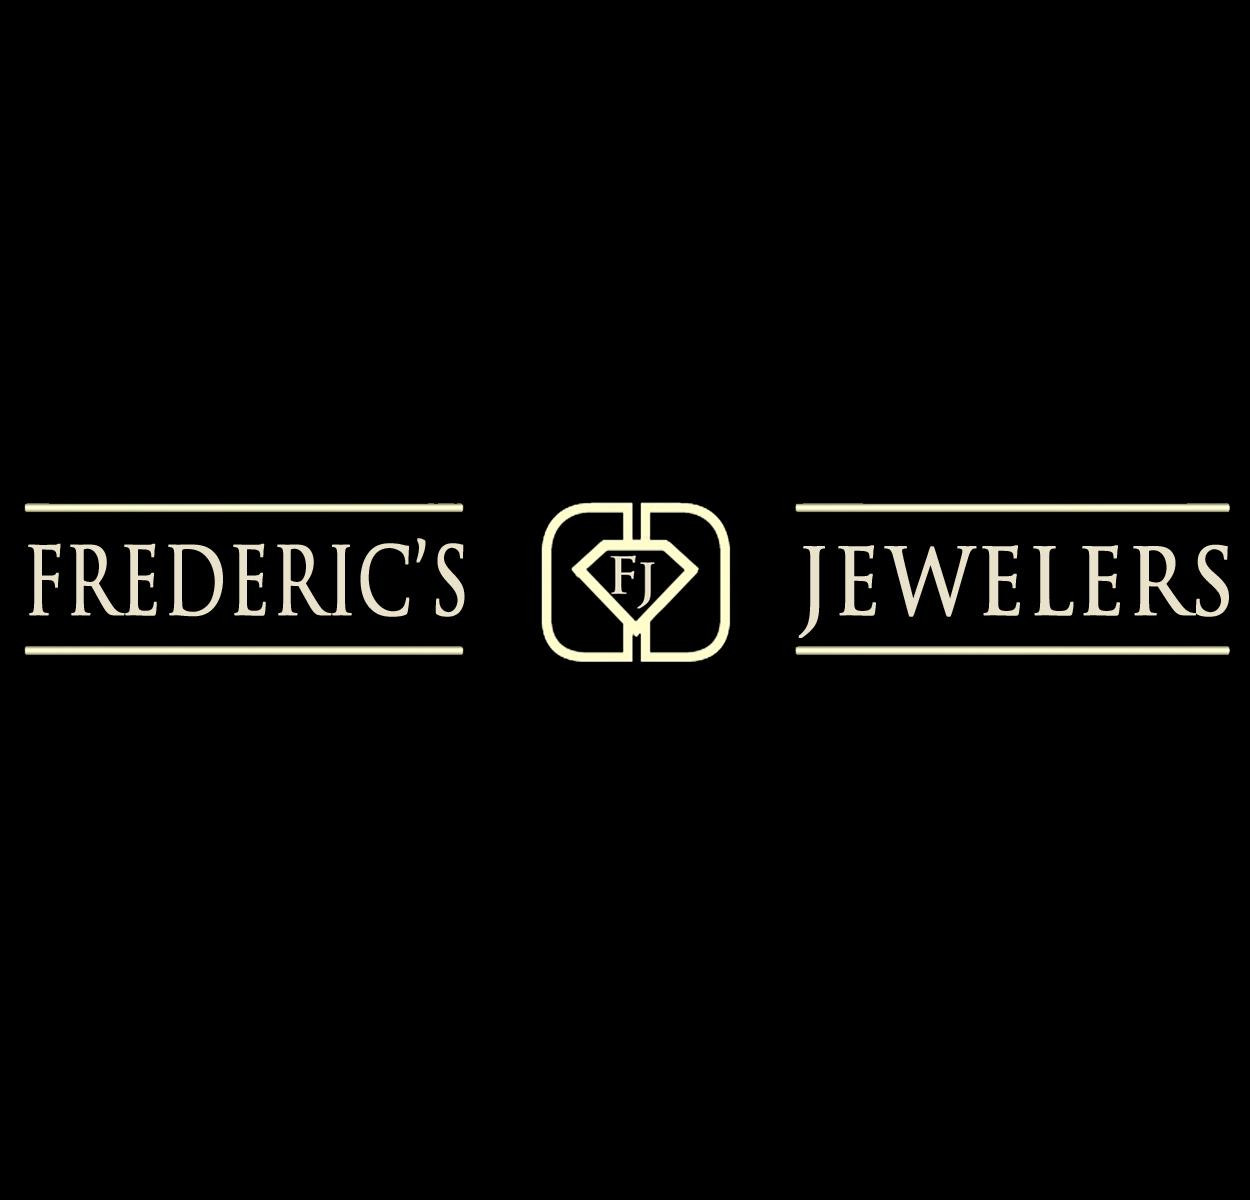 Frederic's Jewelers